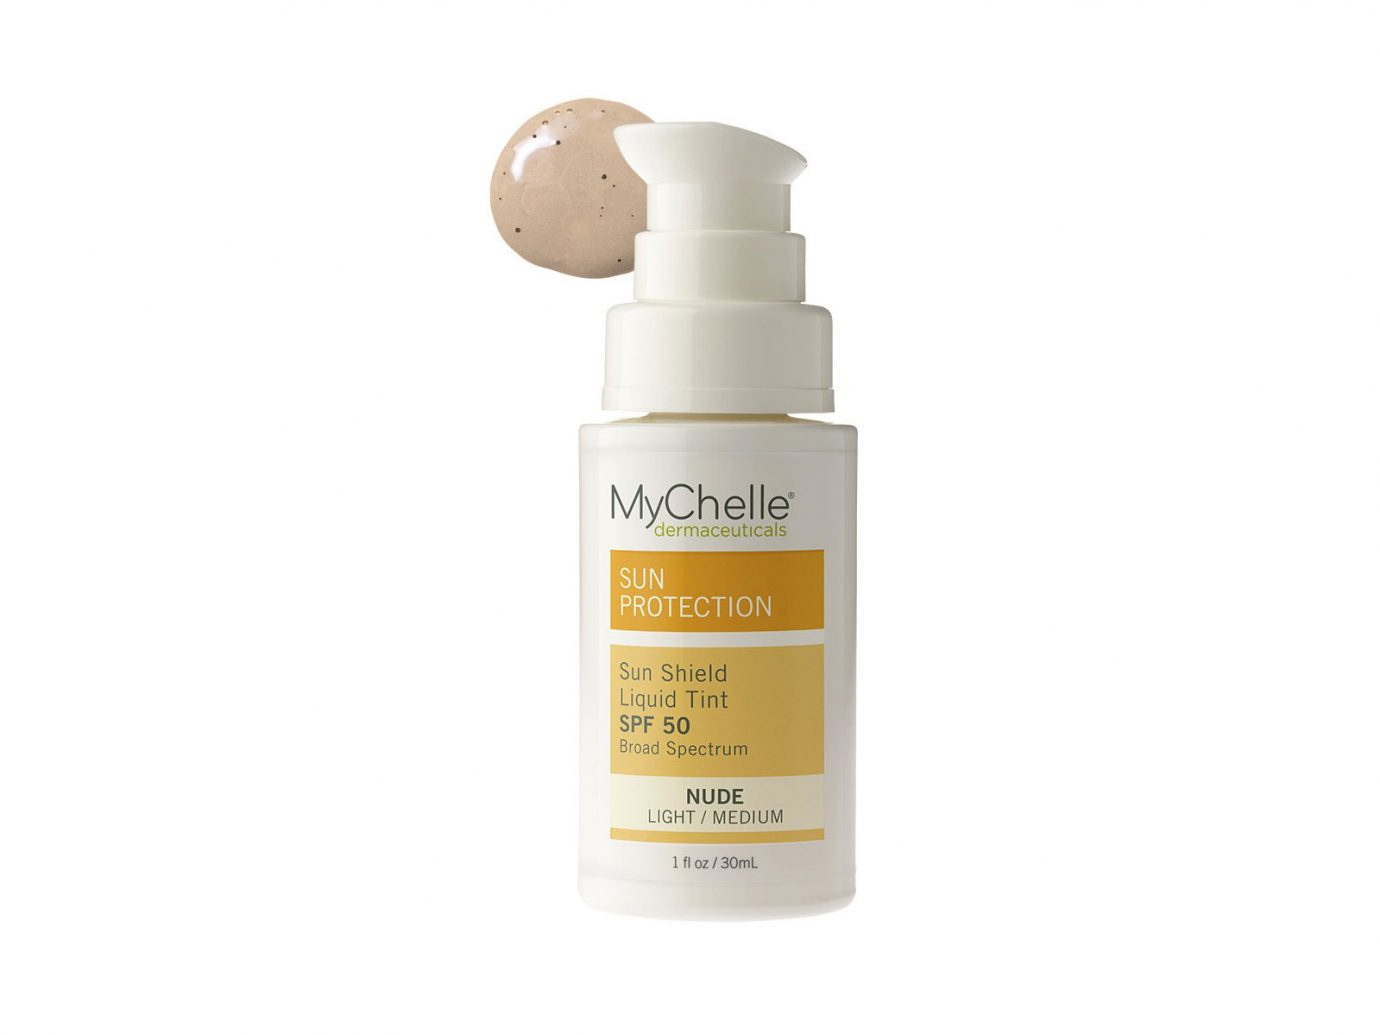 MyChelle Sun Shield Liquid Tint SPF 50